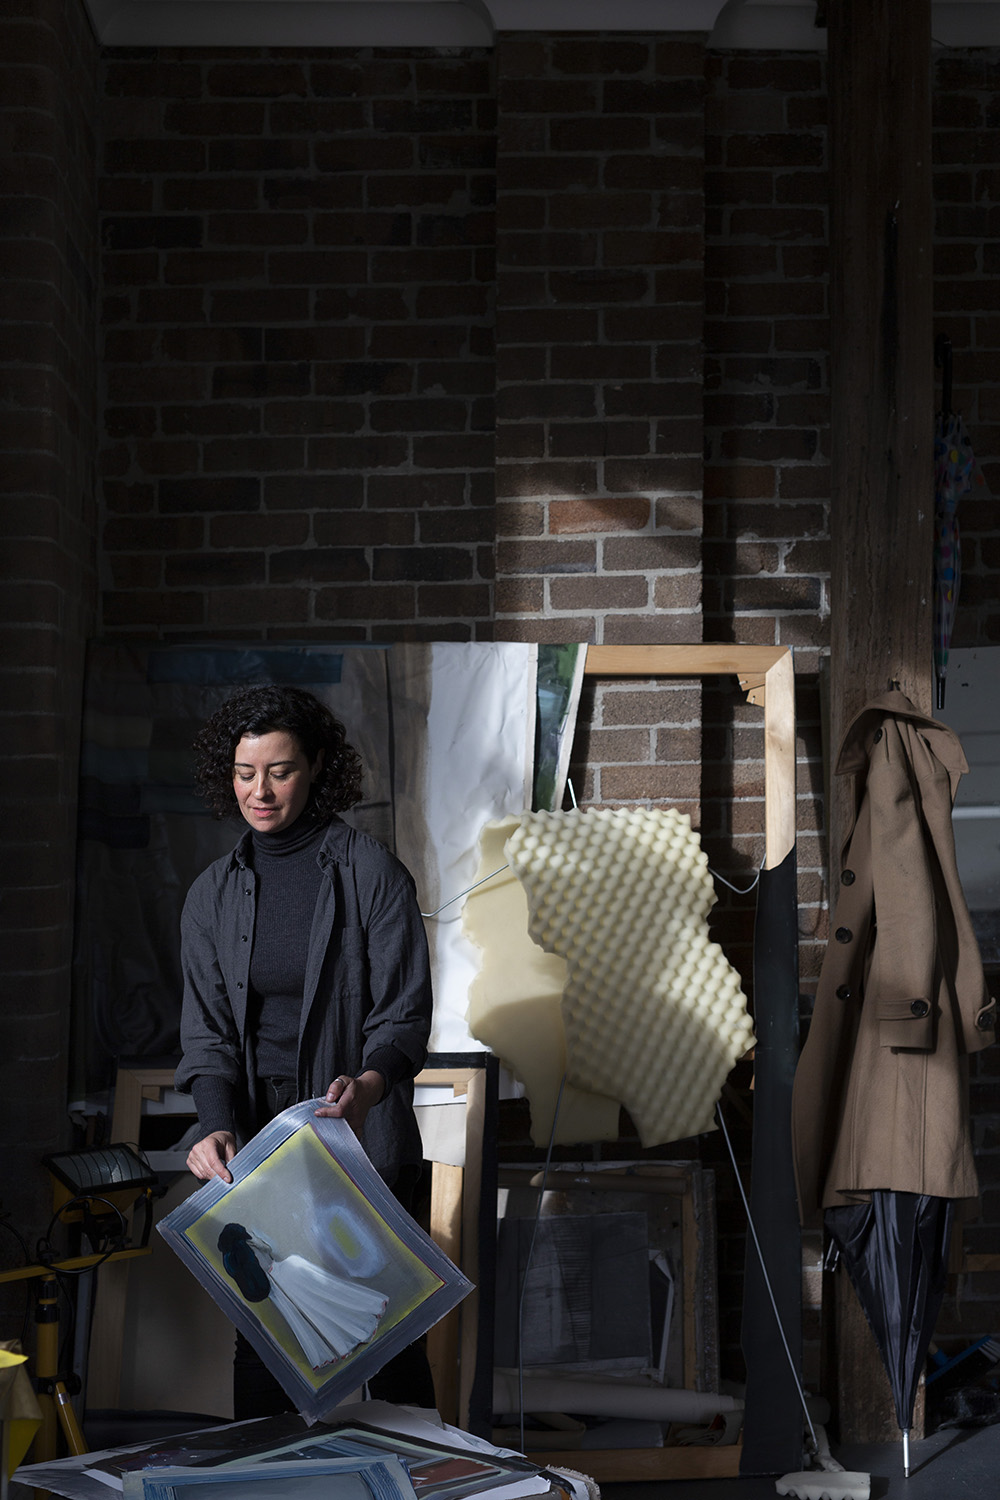 2019 One Year Studio Artist Jelena Telecki in her Artspace Studio. Photo: Jessica Maurer